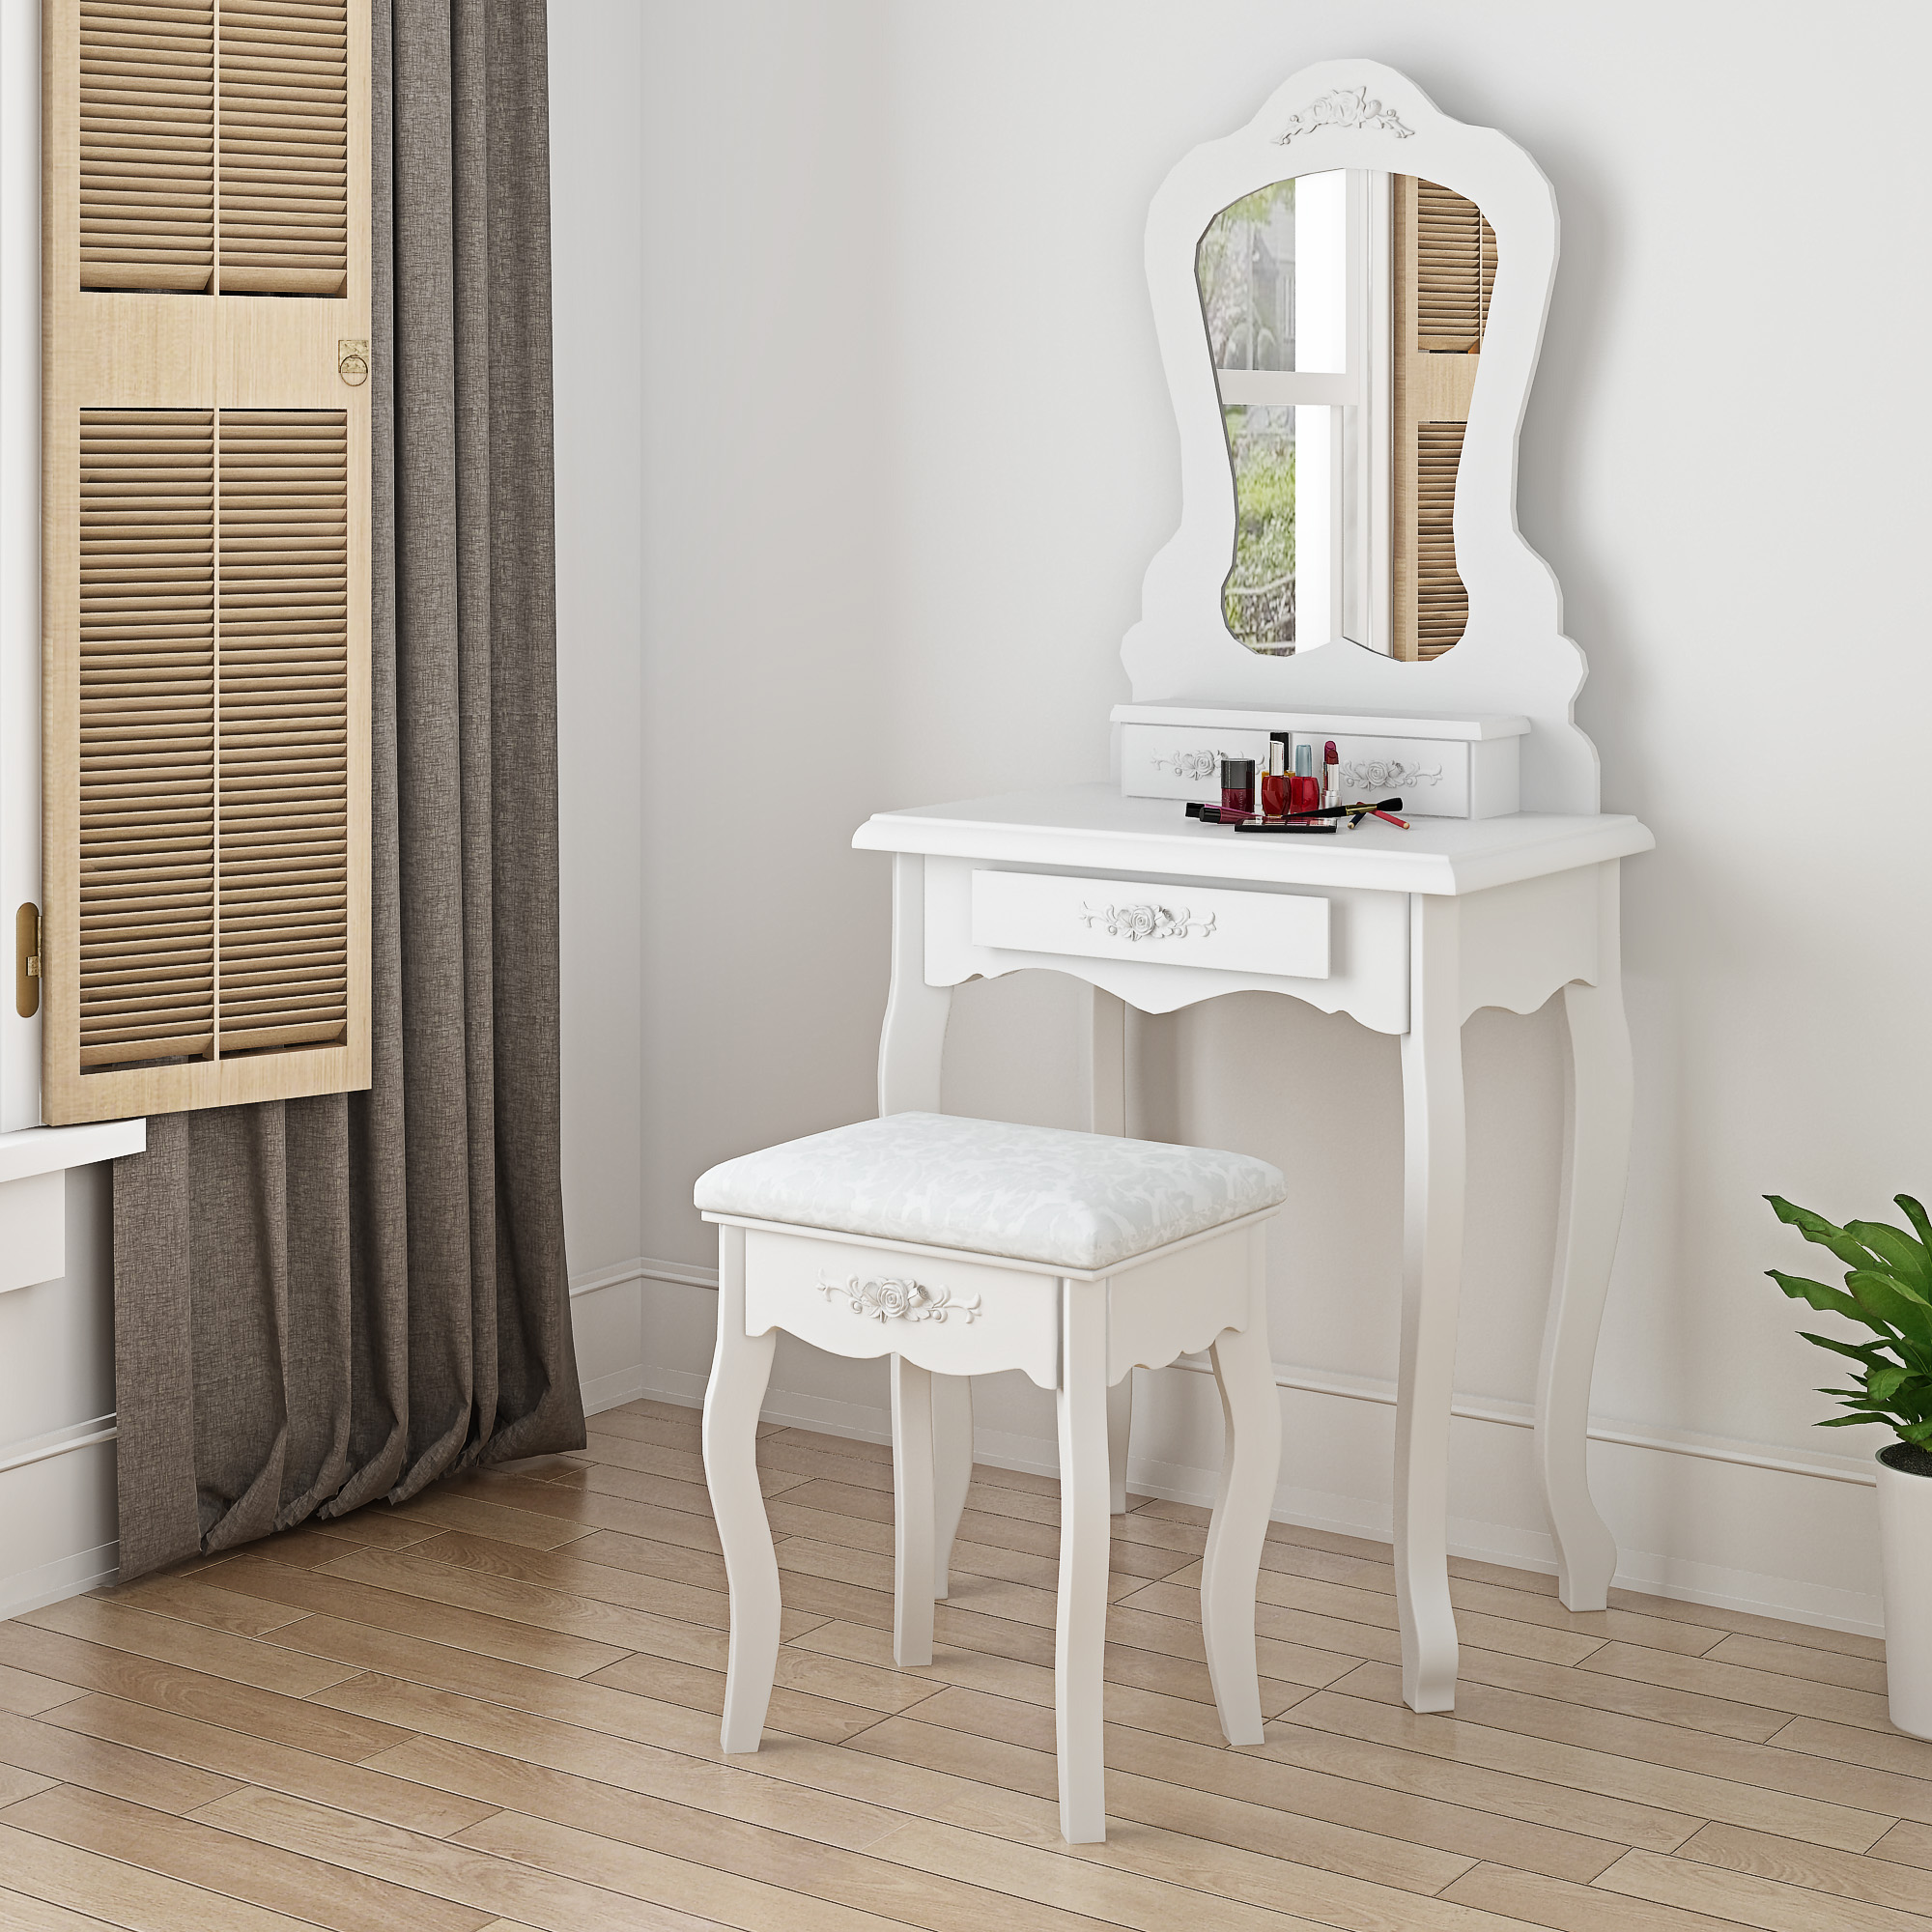 Fine Details About Modern White Small Dressing Table Make Up Desk With Stool Mirror 3 Drawers New Spiritservingveterans Wood Chair Design Ideas Spiritservingveteransorg